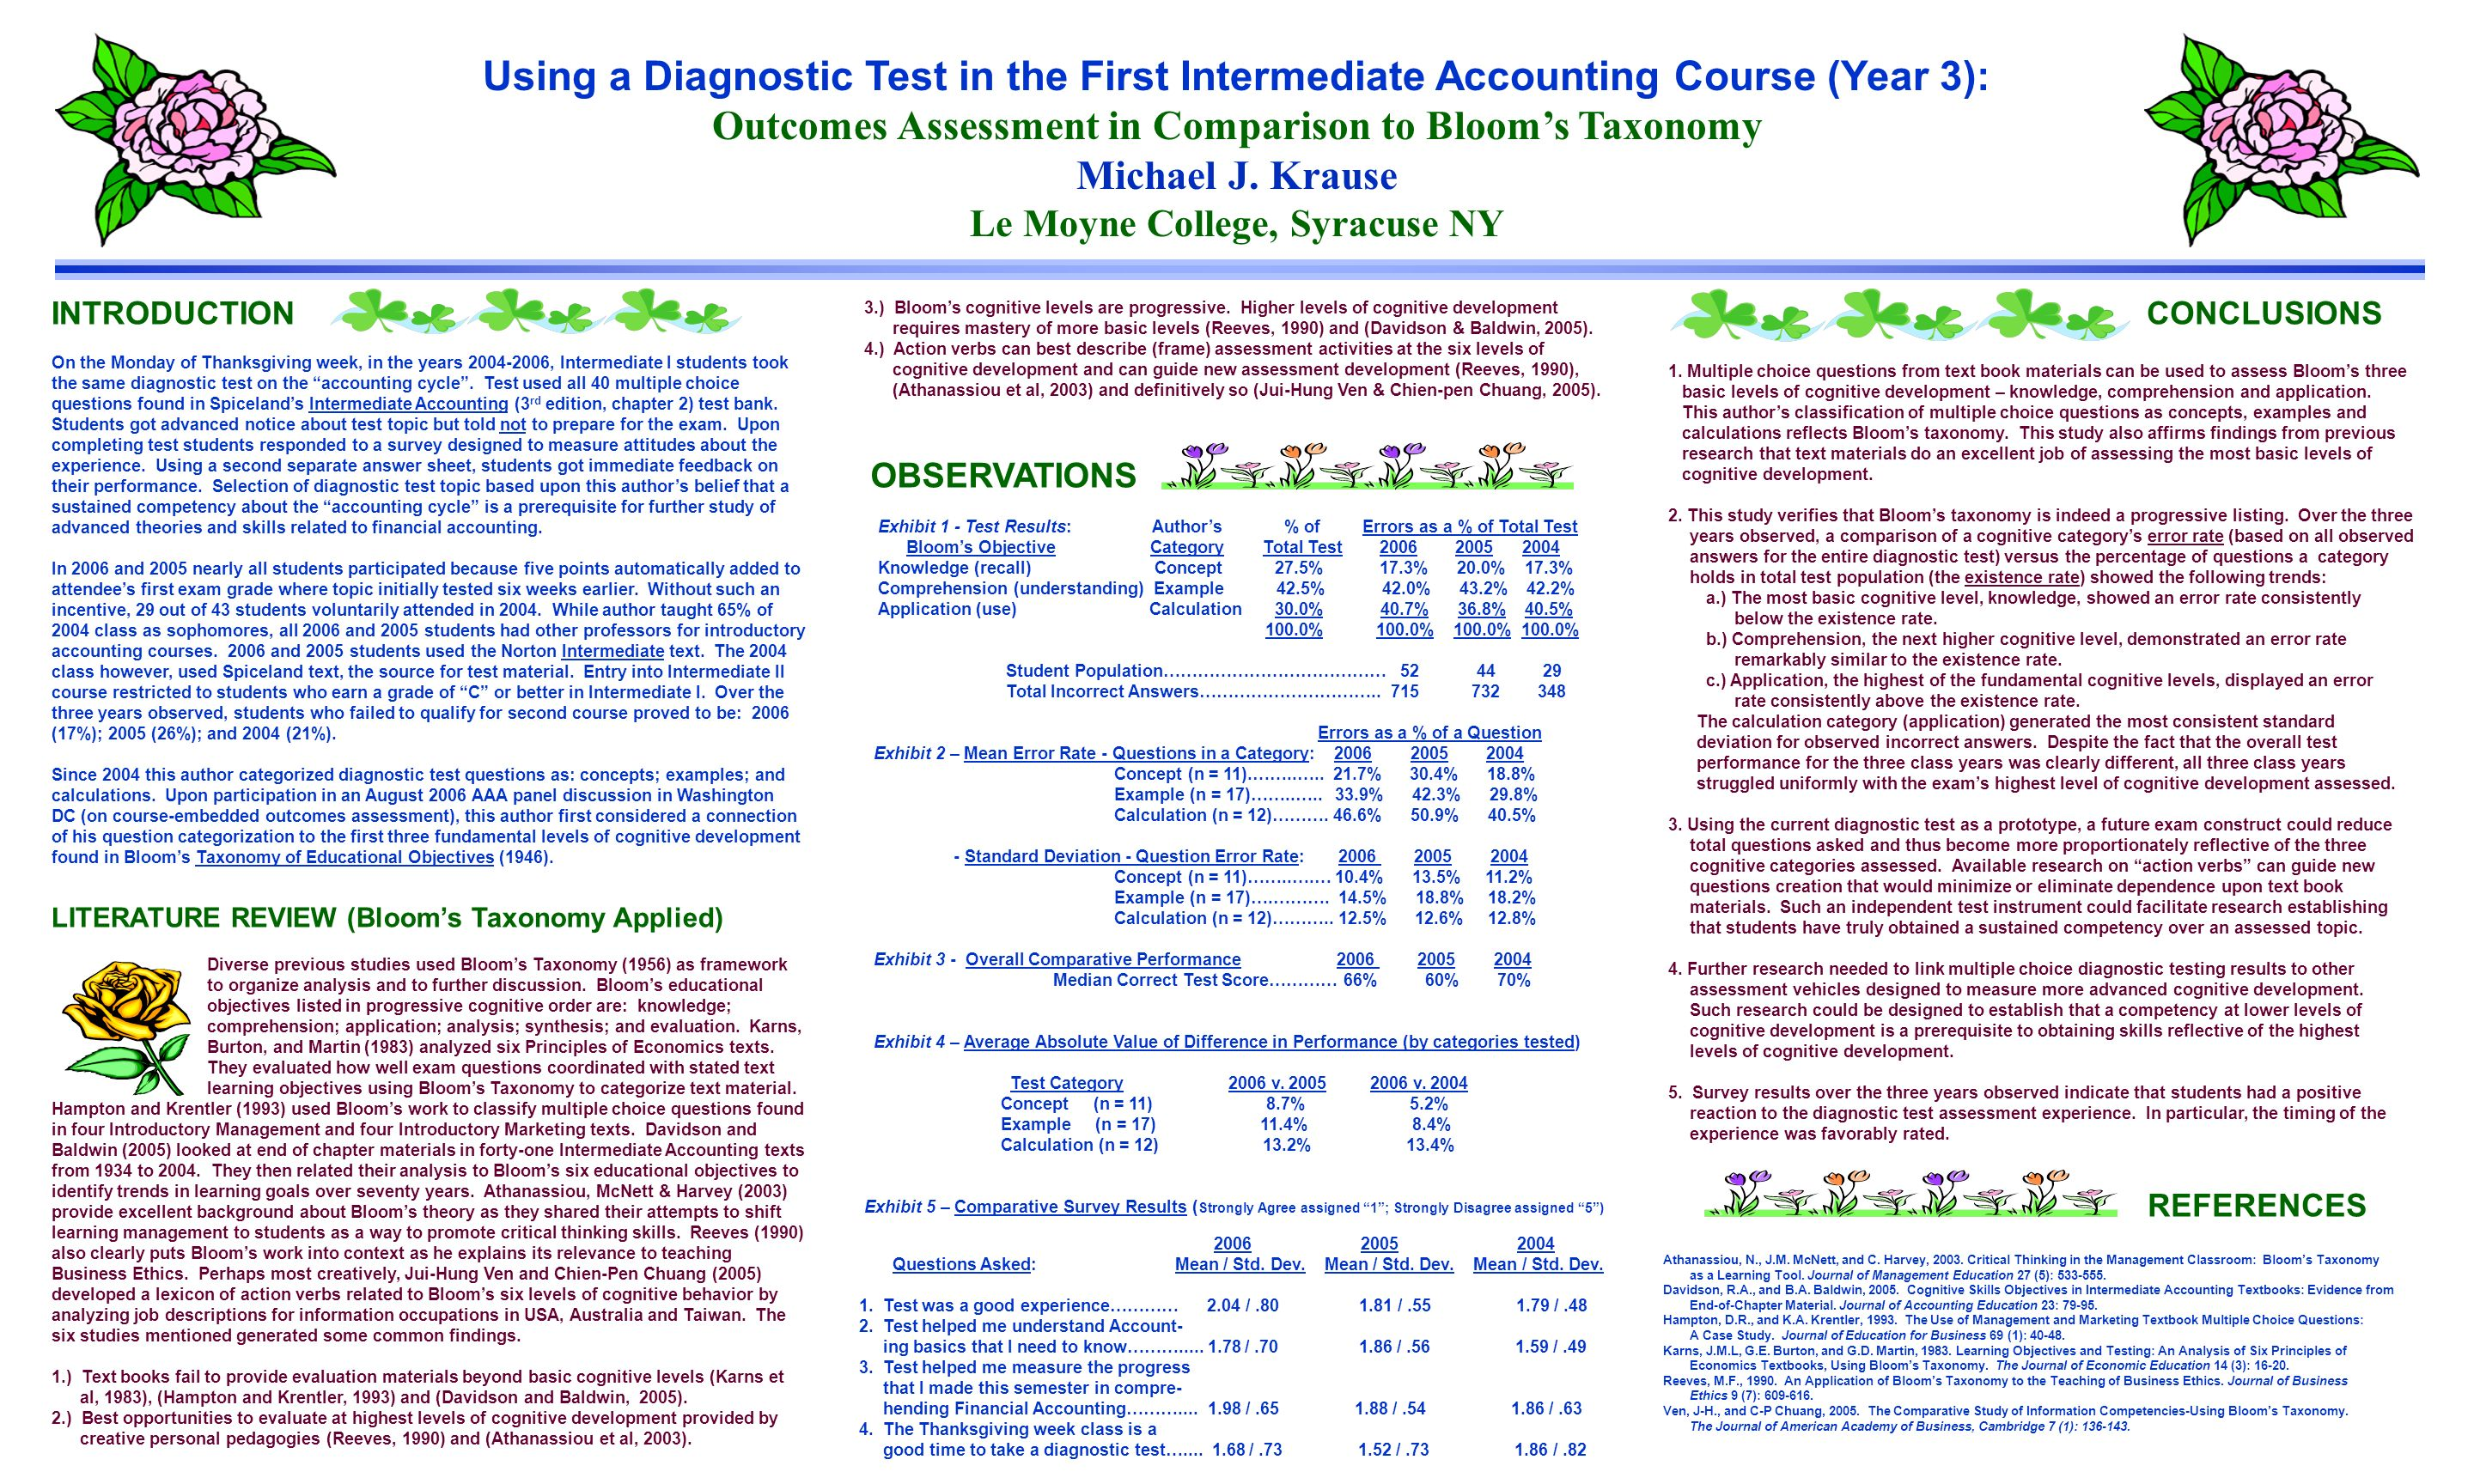 Using a Diagnostic Test in the First Intermediate Accounting Course (Year 3): Outcomes Assessment in Comparison to Blooms Taxonomy Michael J. Krause L